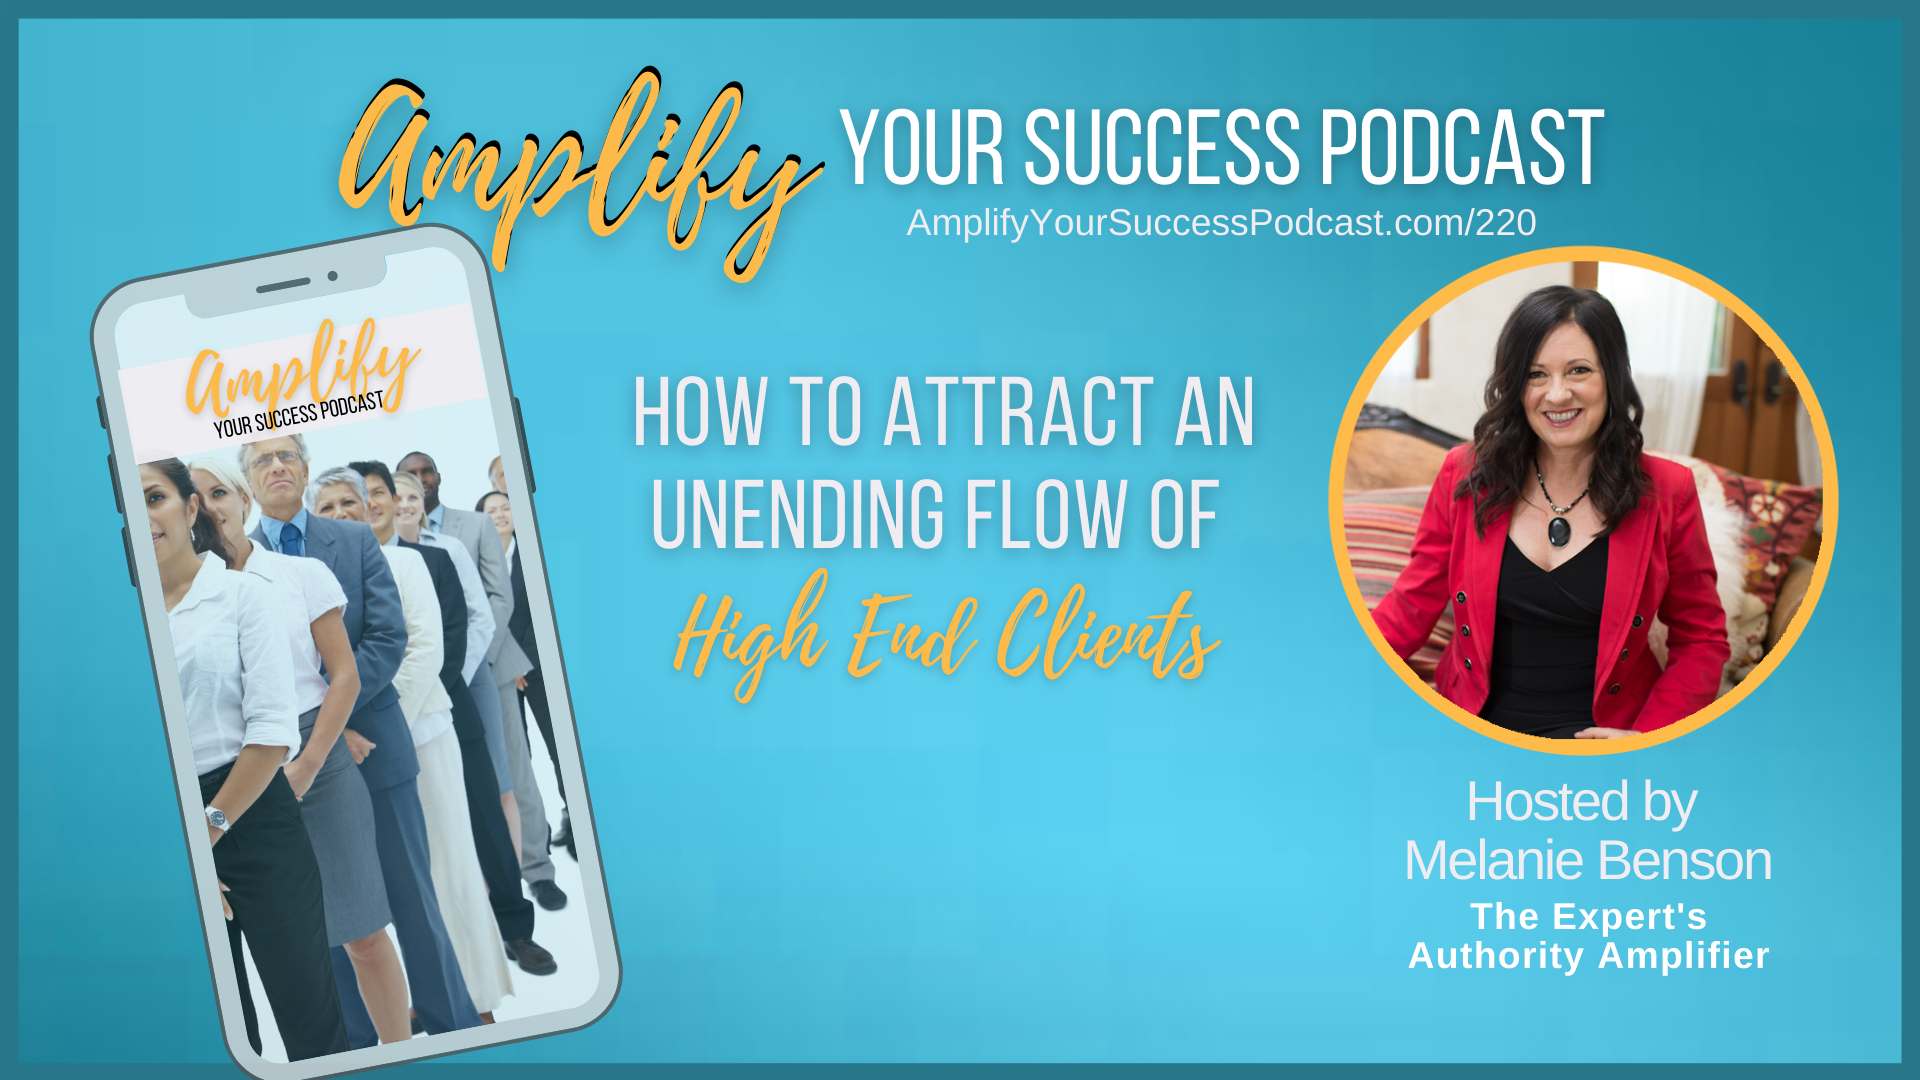 How To Attract An Unending Flow of High End Clients